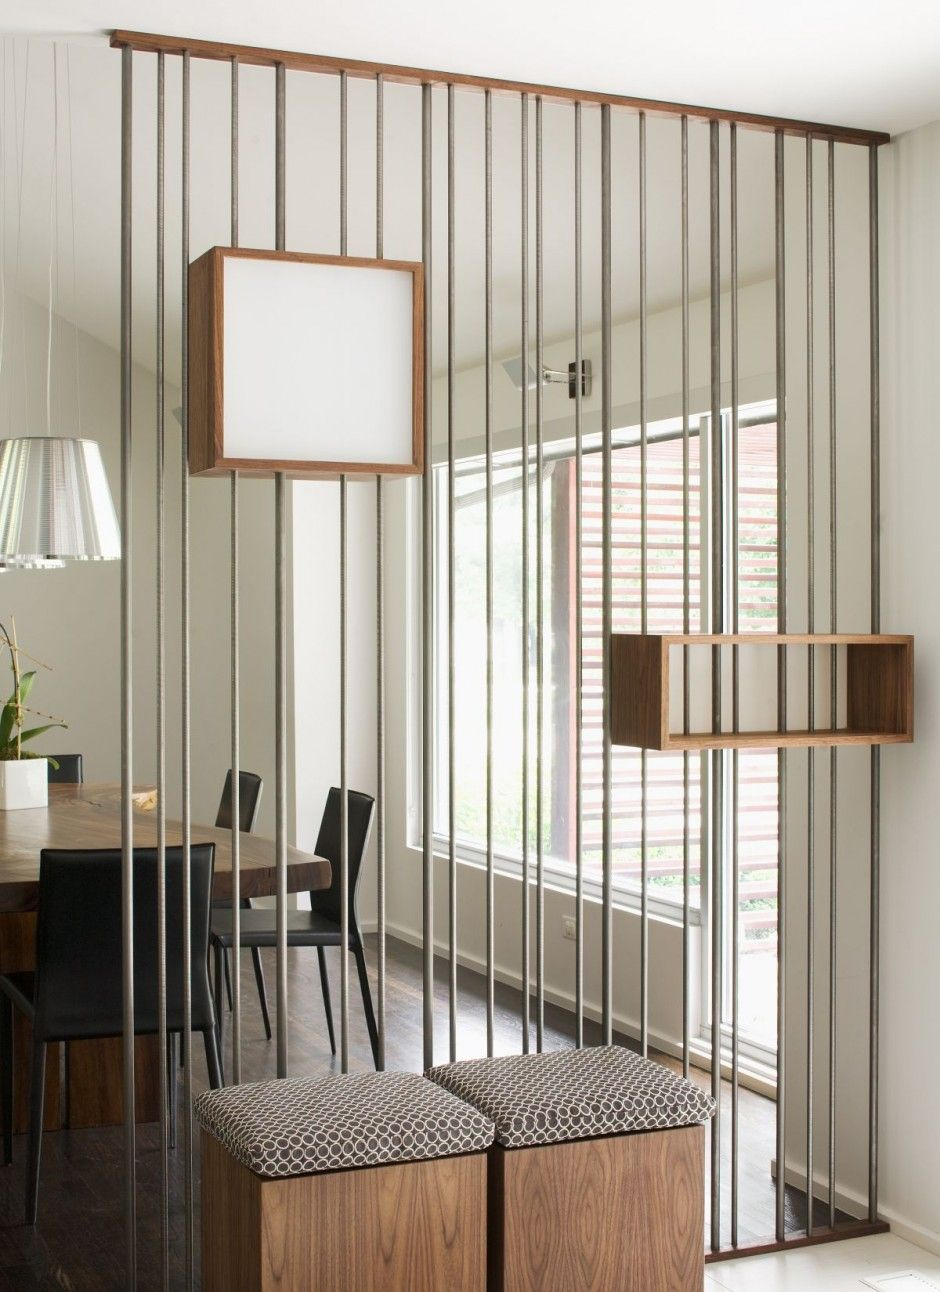 Room Separation Ideas Design Part - 21: Decoration, Beautiful Midcentury Modern House Foyer Decoration With  Original Modern Half Wall Room Dividers By Steel Rod Screen Room Divider  Design Ideas ...